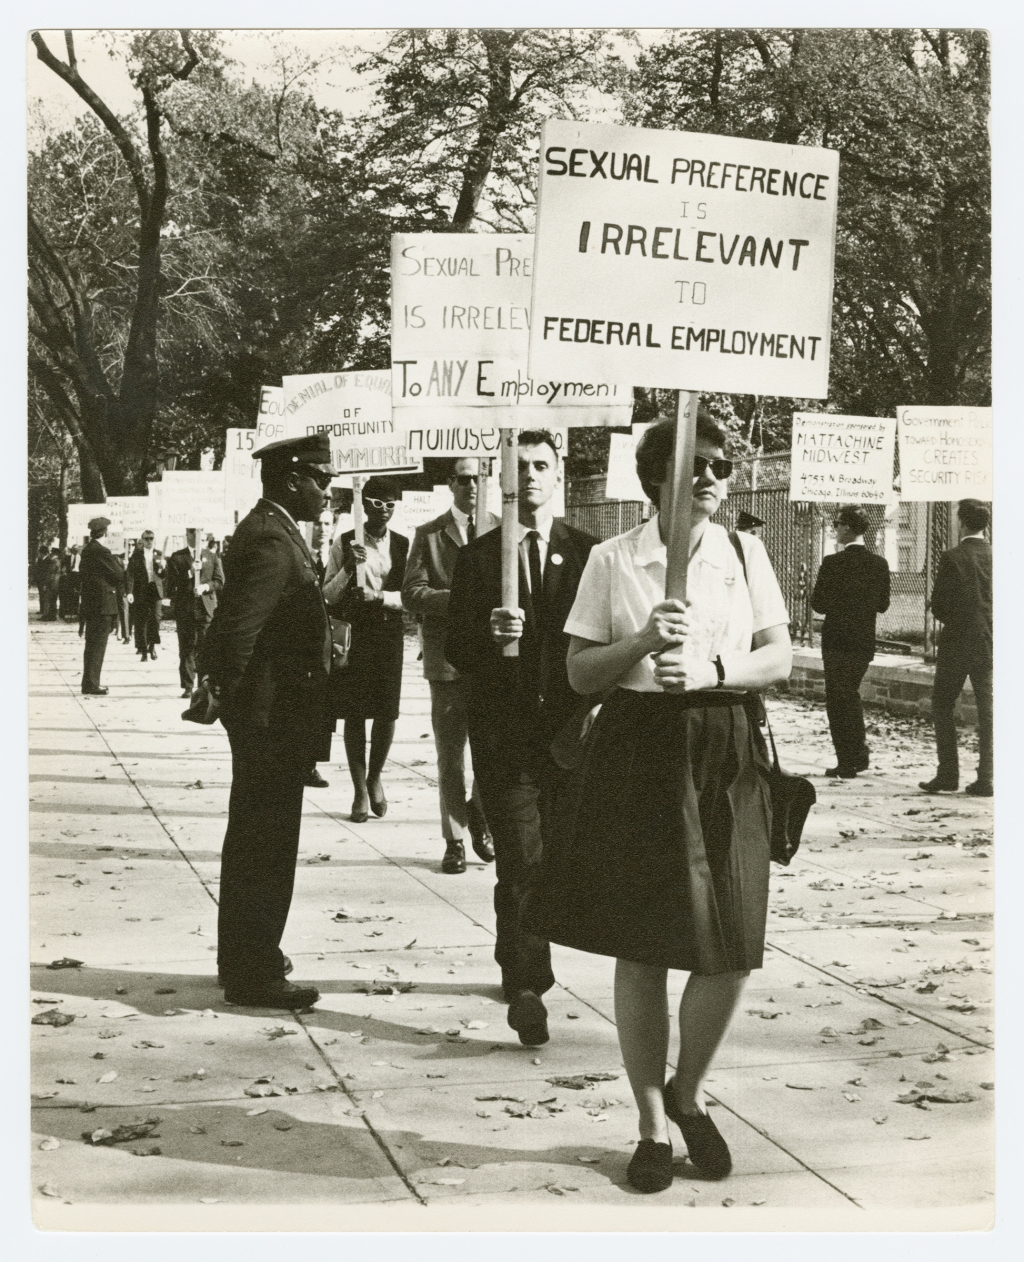 """Pre-Stonewall, gay civil rights demonstrations generally centered around military employment discrimination, because the government avoided hiring LGBTQ people due to """"the Pink Scare."""" """"In the 1950s and 60s, fears about homosexuals — particularly in employment — is that we were blackmailable,"""" says Bauman. Because we have a secret, the communists could get us to share government secrets."""" Nearly all of the photographs from these early gay-rights protests were taken by Kay Tobin Lahusen, the first out gay photojournalist in the United States. """"Kay was able to frame these as historic photographs,"""" says Baumann, """"But there's less than 20 people here. This is everybody who was willing to put their butts on the line on the East Coast for gay rights. It looks like a historic event, and it is! But it's a small group of people."""""""